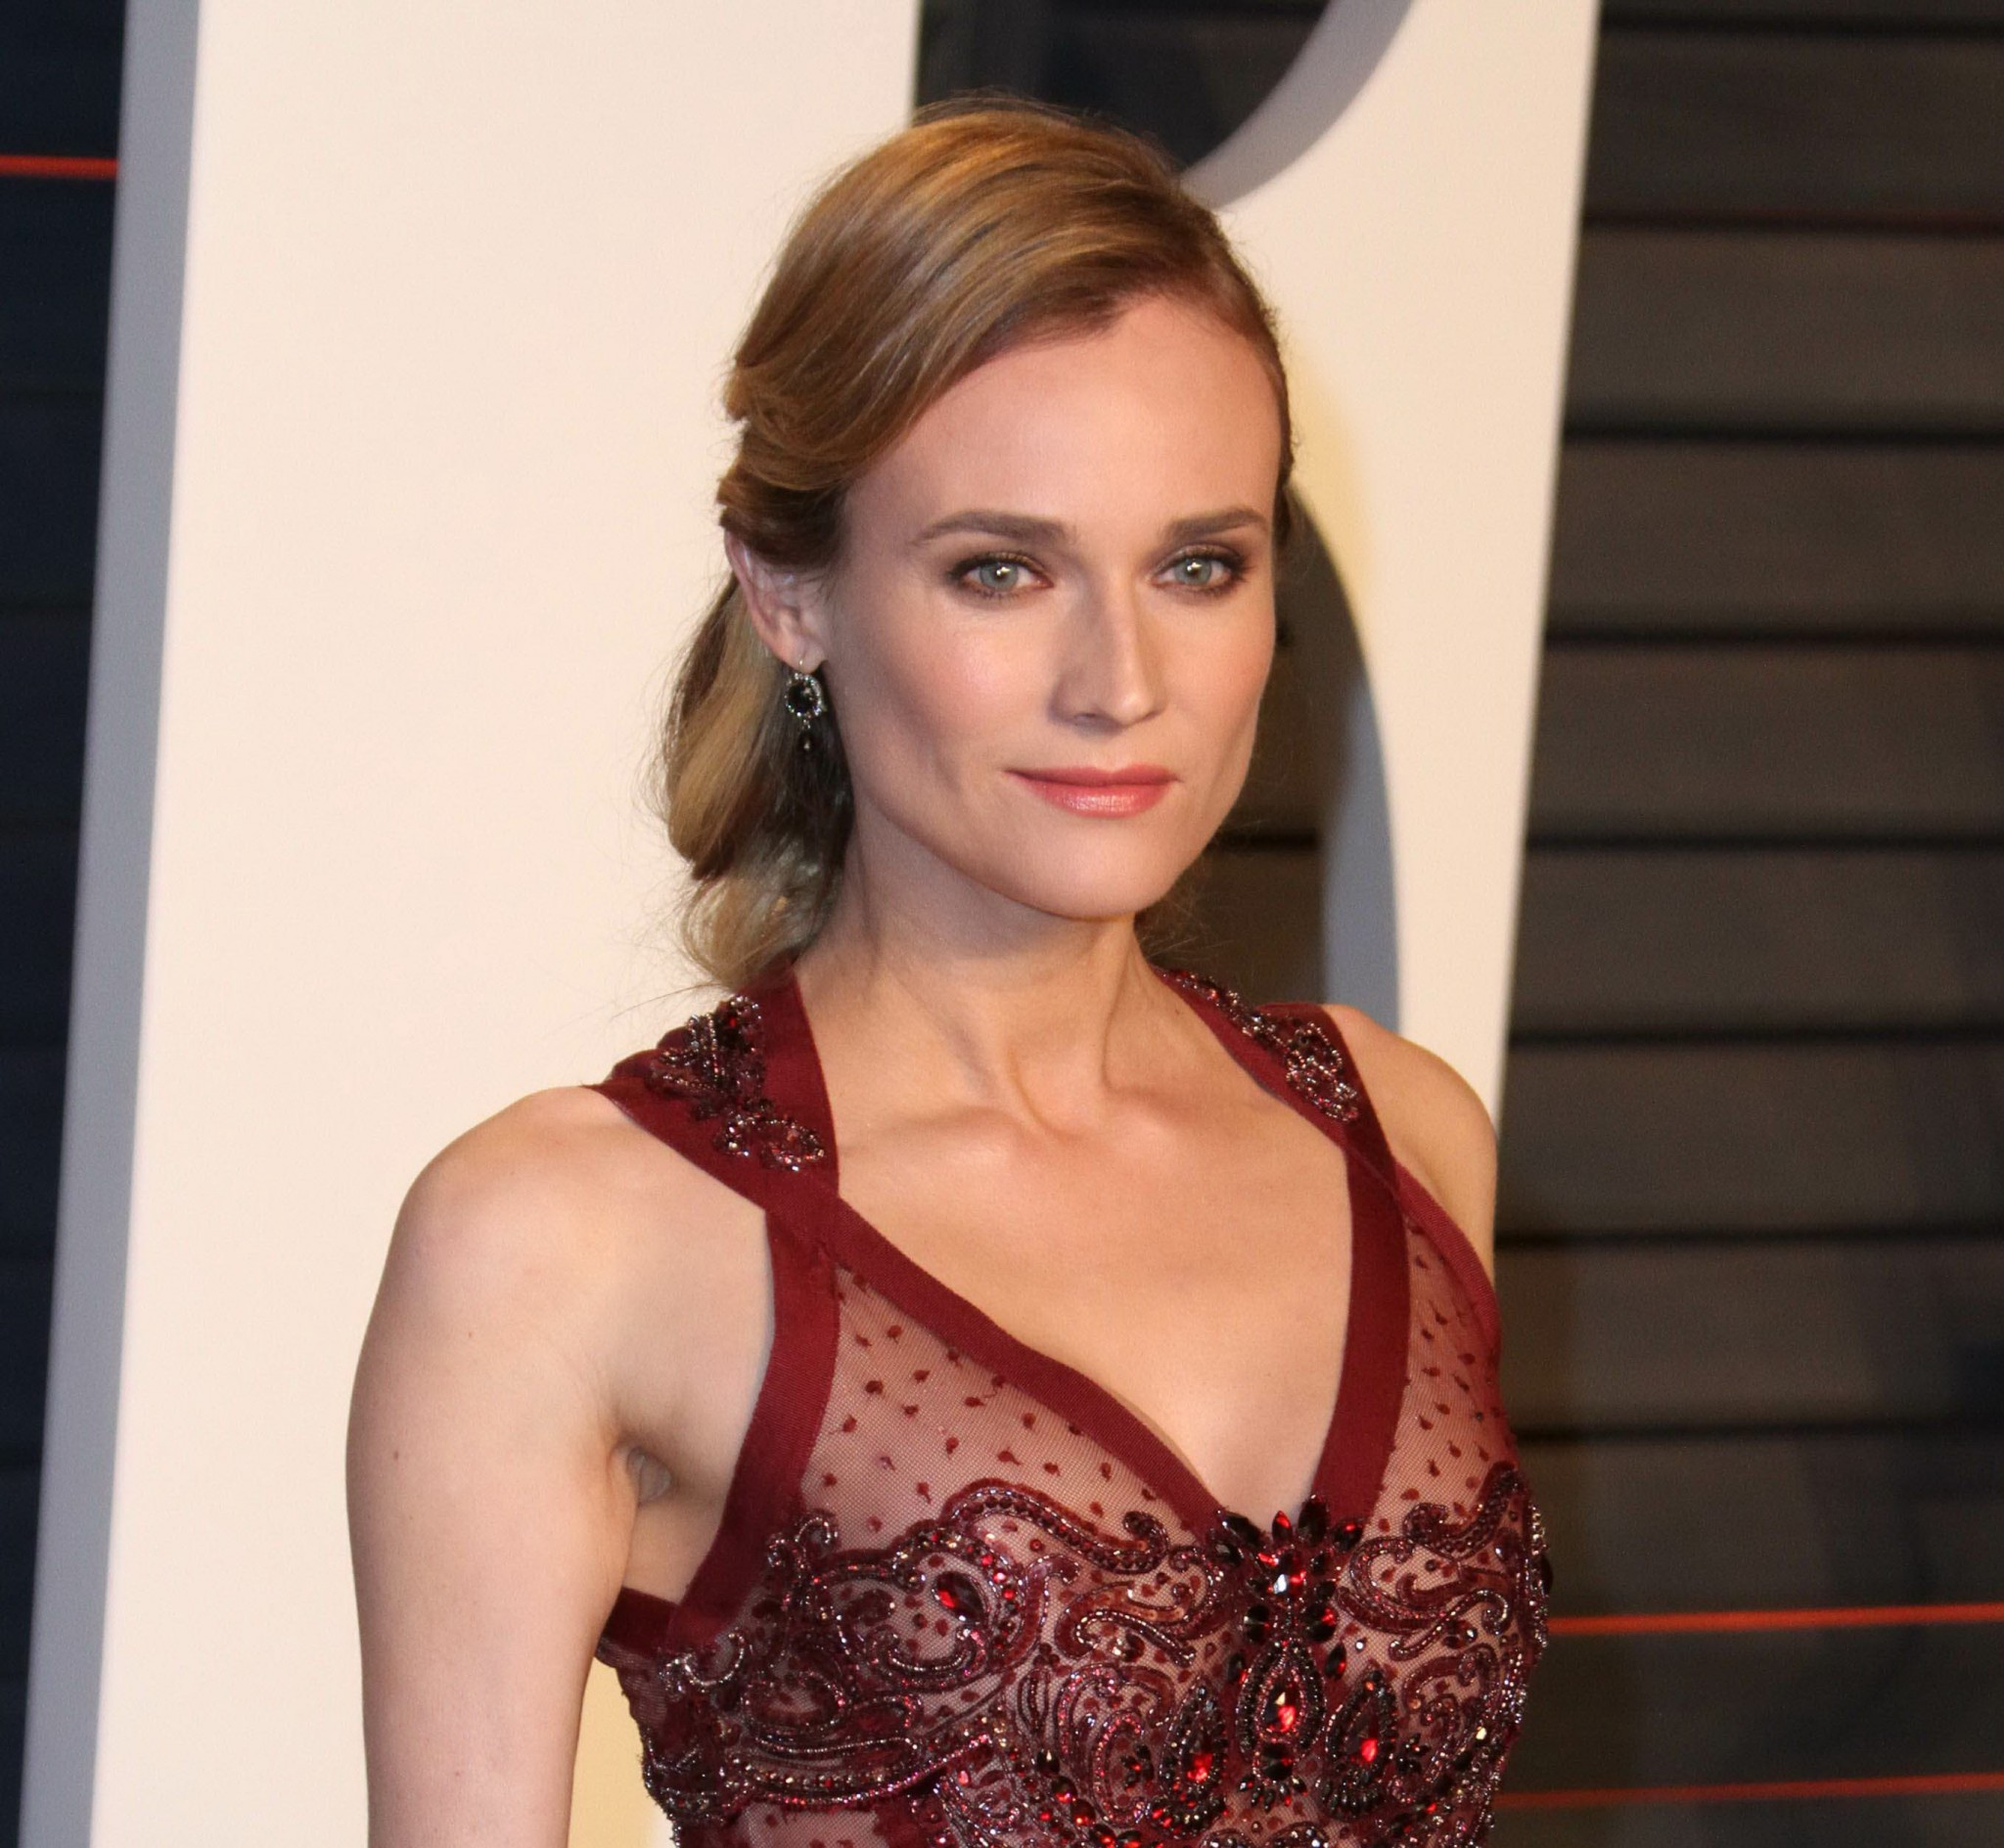 diane-kruger-see-through-dress-vanity-fair-oscar-party-07